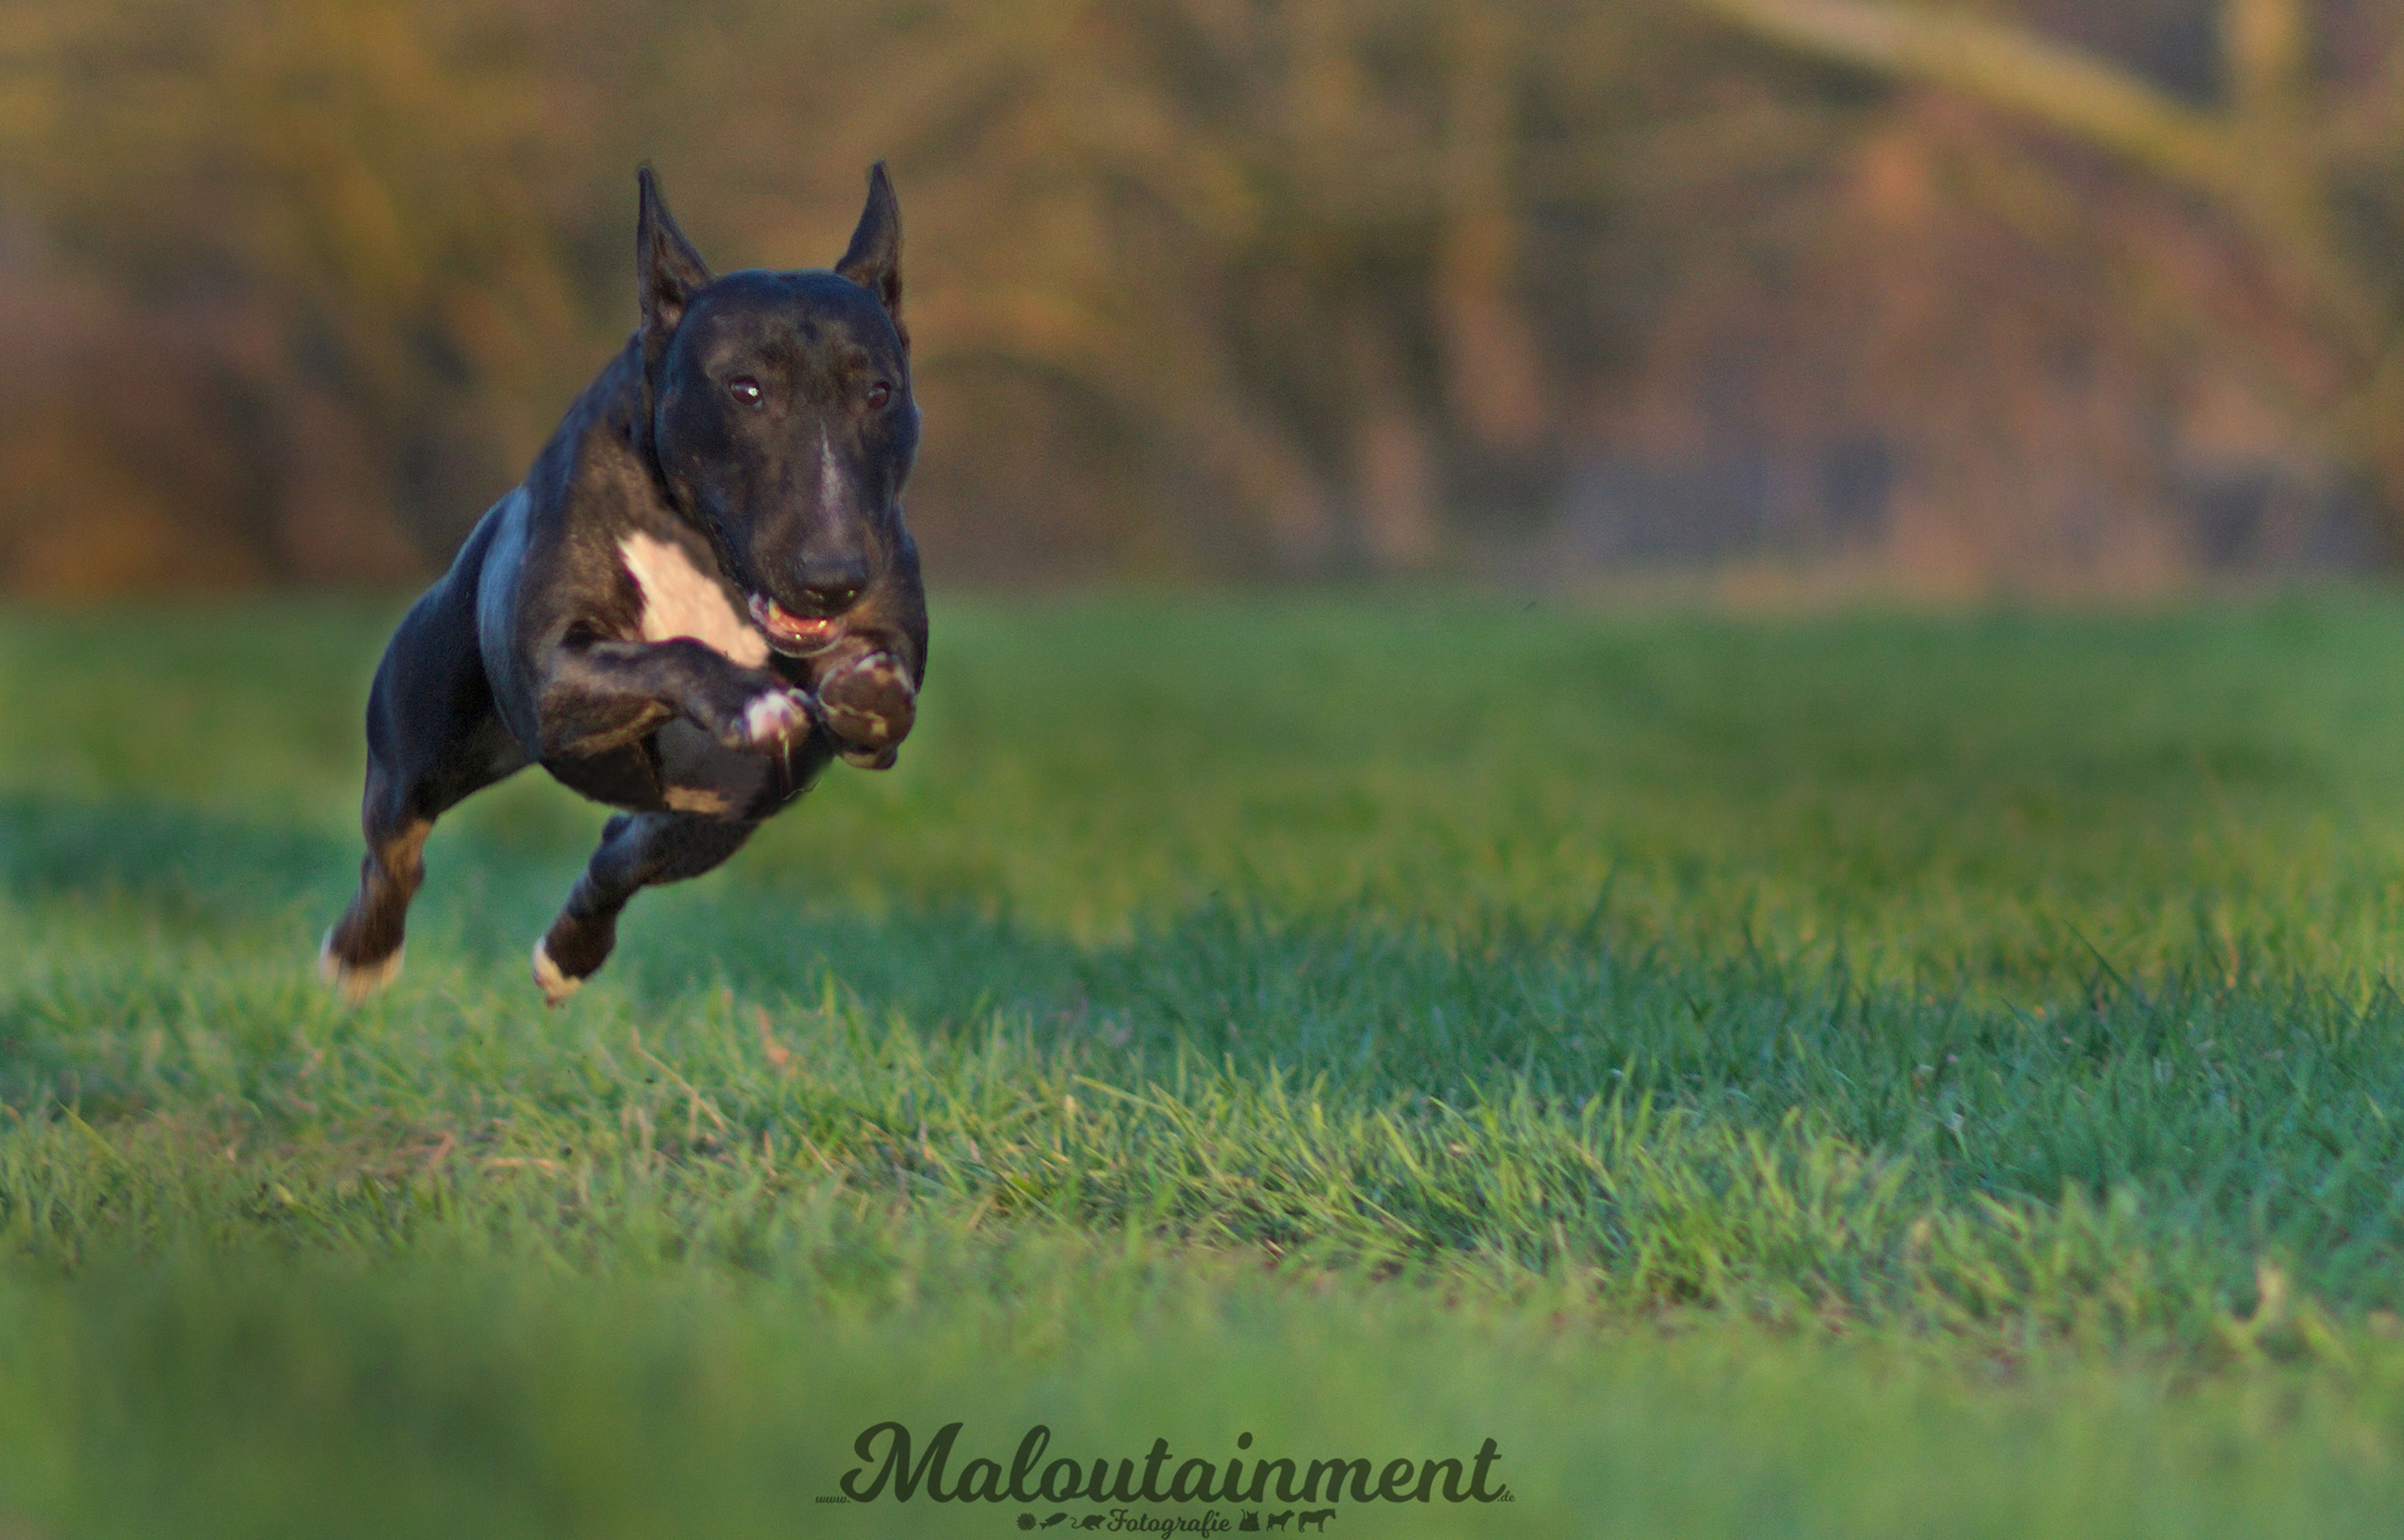 domestic animals, dog, grass, pets, animal themes, field, one animal, running, day, mammal, green color, outdoors, nature, no people, full length